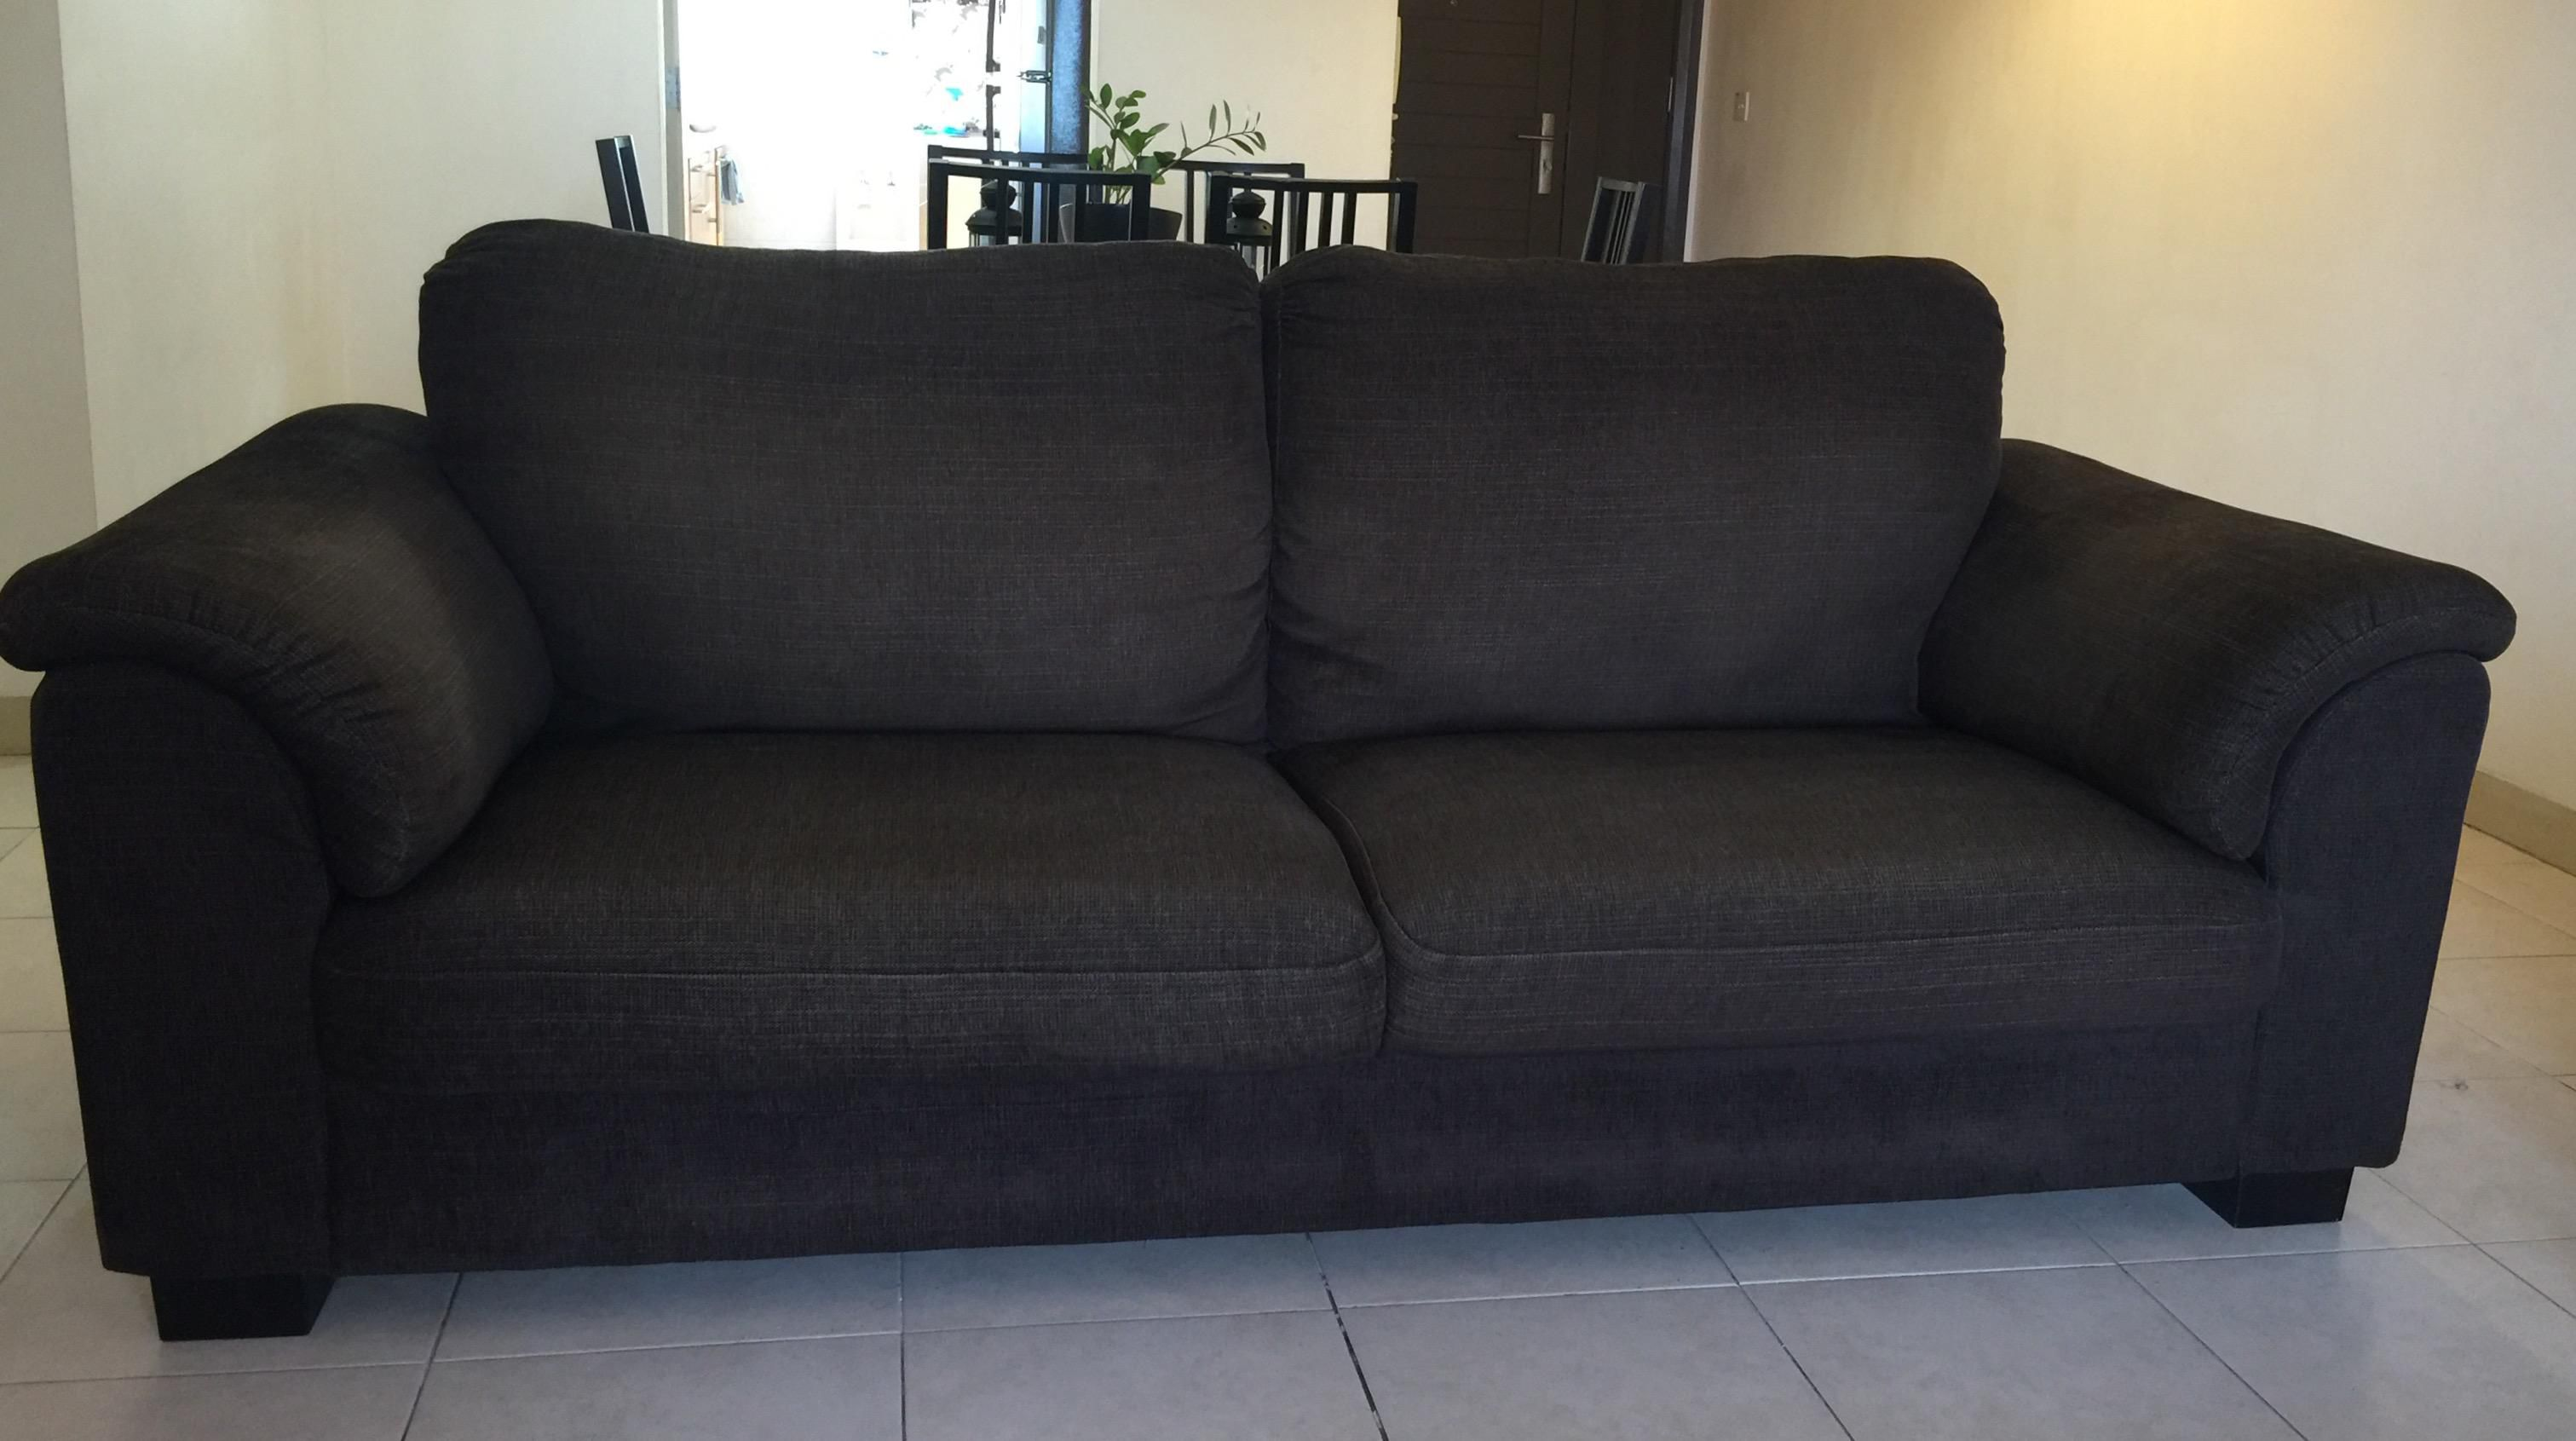 50 off ikea fabric sofa for Sofa bed ikea malaysia